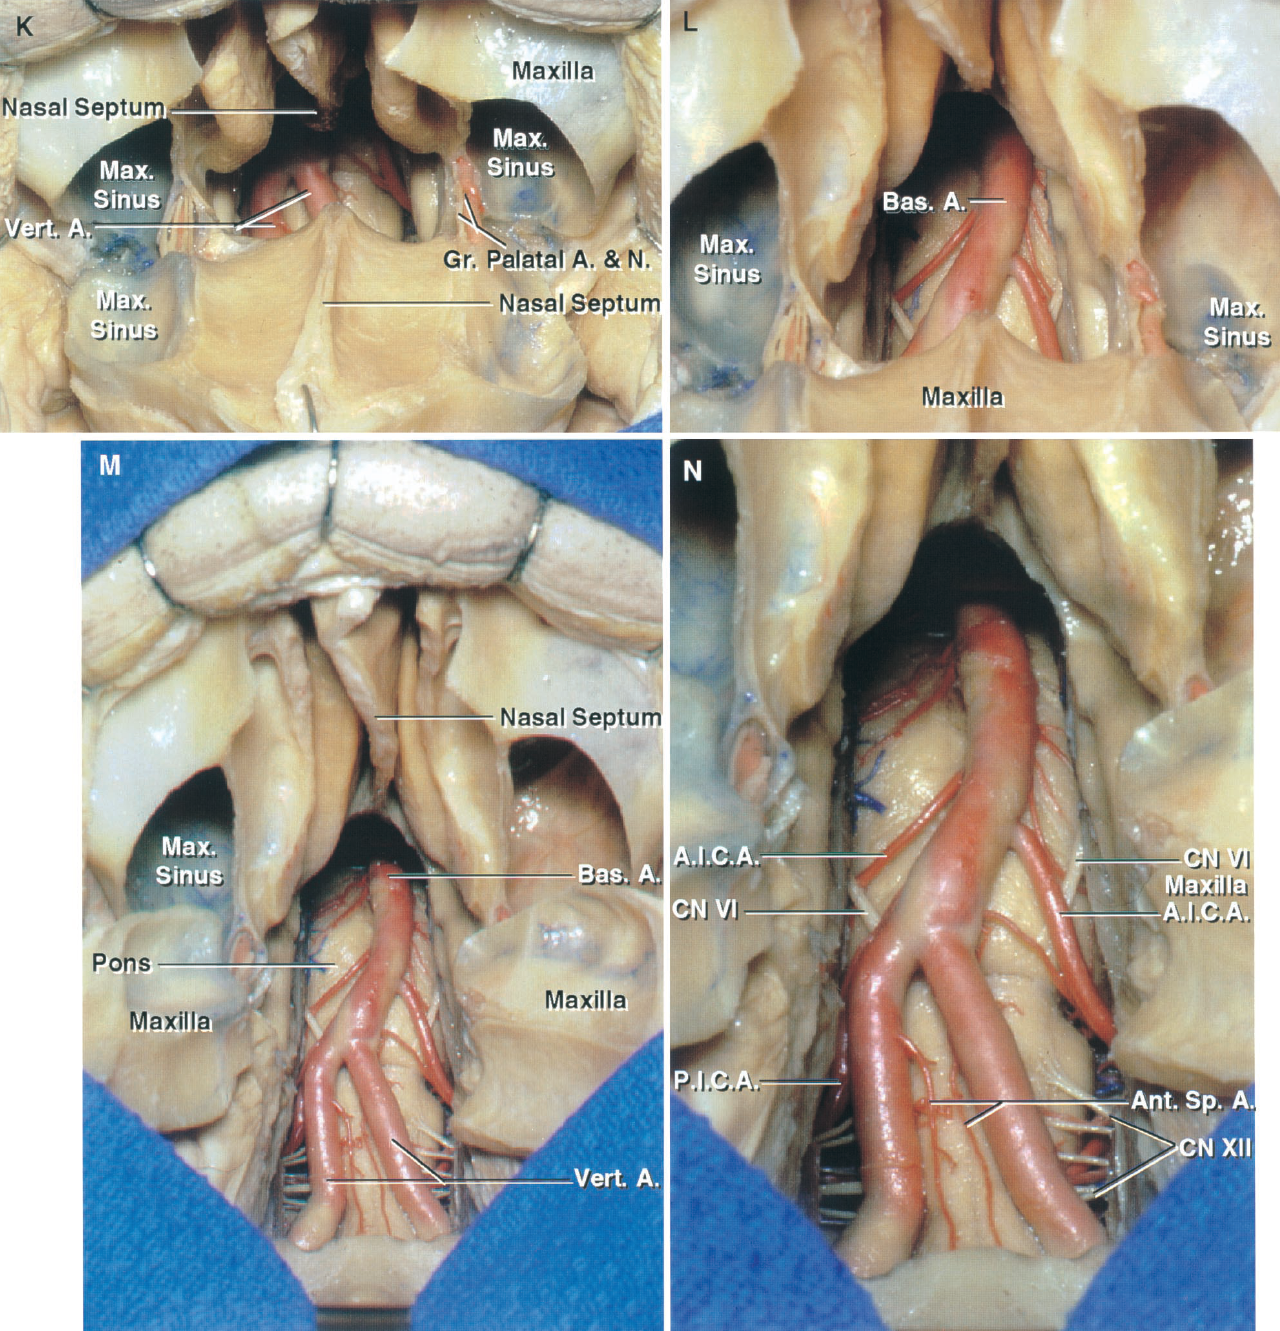 FIGURE 6.12. K–N. Transoral, transpalatal, and transmaxillary approaches to the clivus and foramen magnum. K, the lower maxilla has been displaced downward. The clival window and vertebral arteries can be seen through the exposure. L, enlarged view of the clival opening. M, the maxilla has been split vertically in the midline and the halves reflected laterally, allowing the clival opening to be extended upward. N, enlarged view of the clival exposure. The right AICA passes behind the right abducens nerve and the left AICA passes in front of the left abducens nerve.